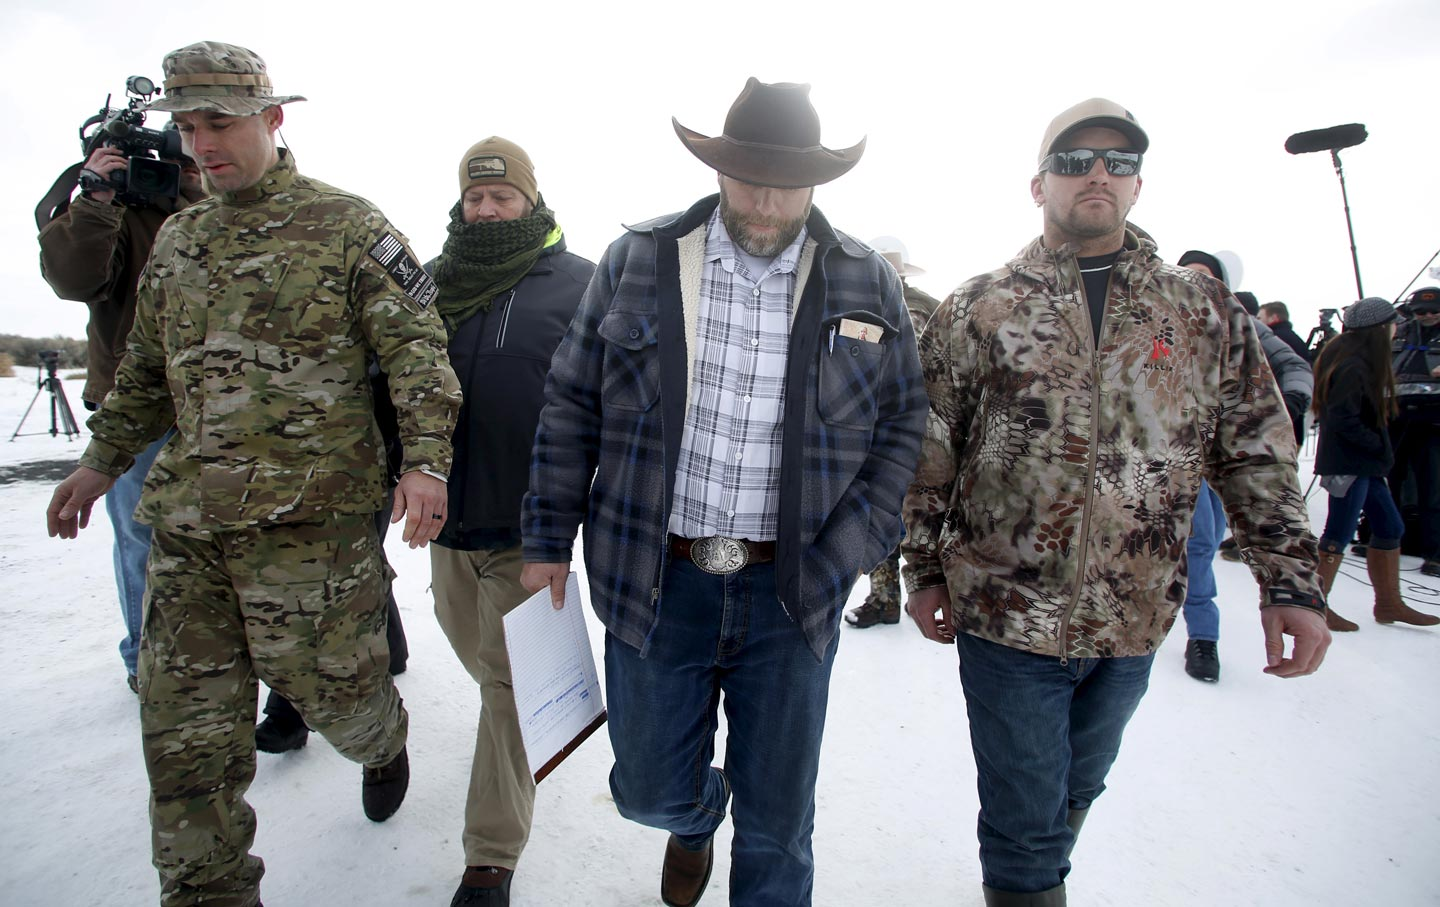 Malheur Wildlife Refuge occupation